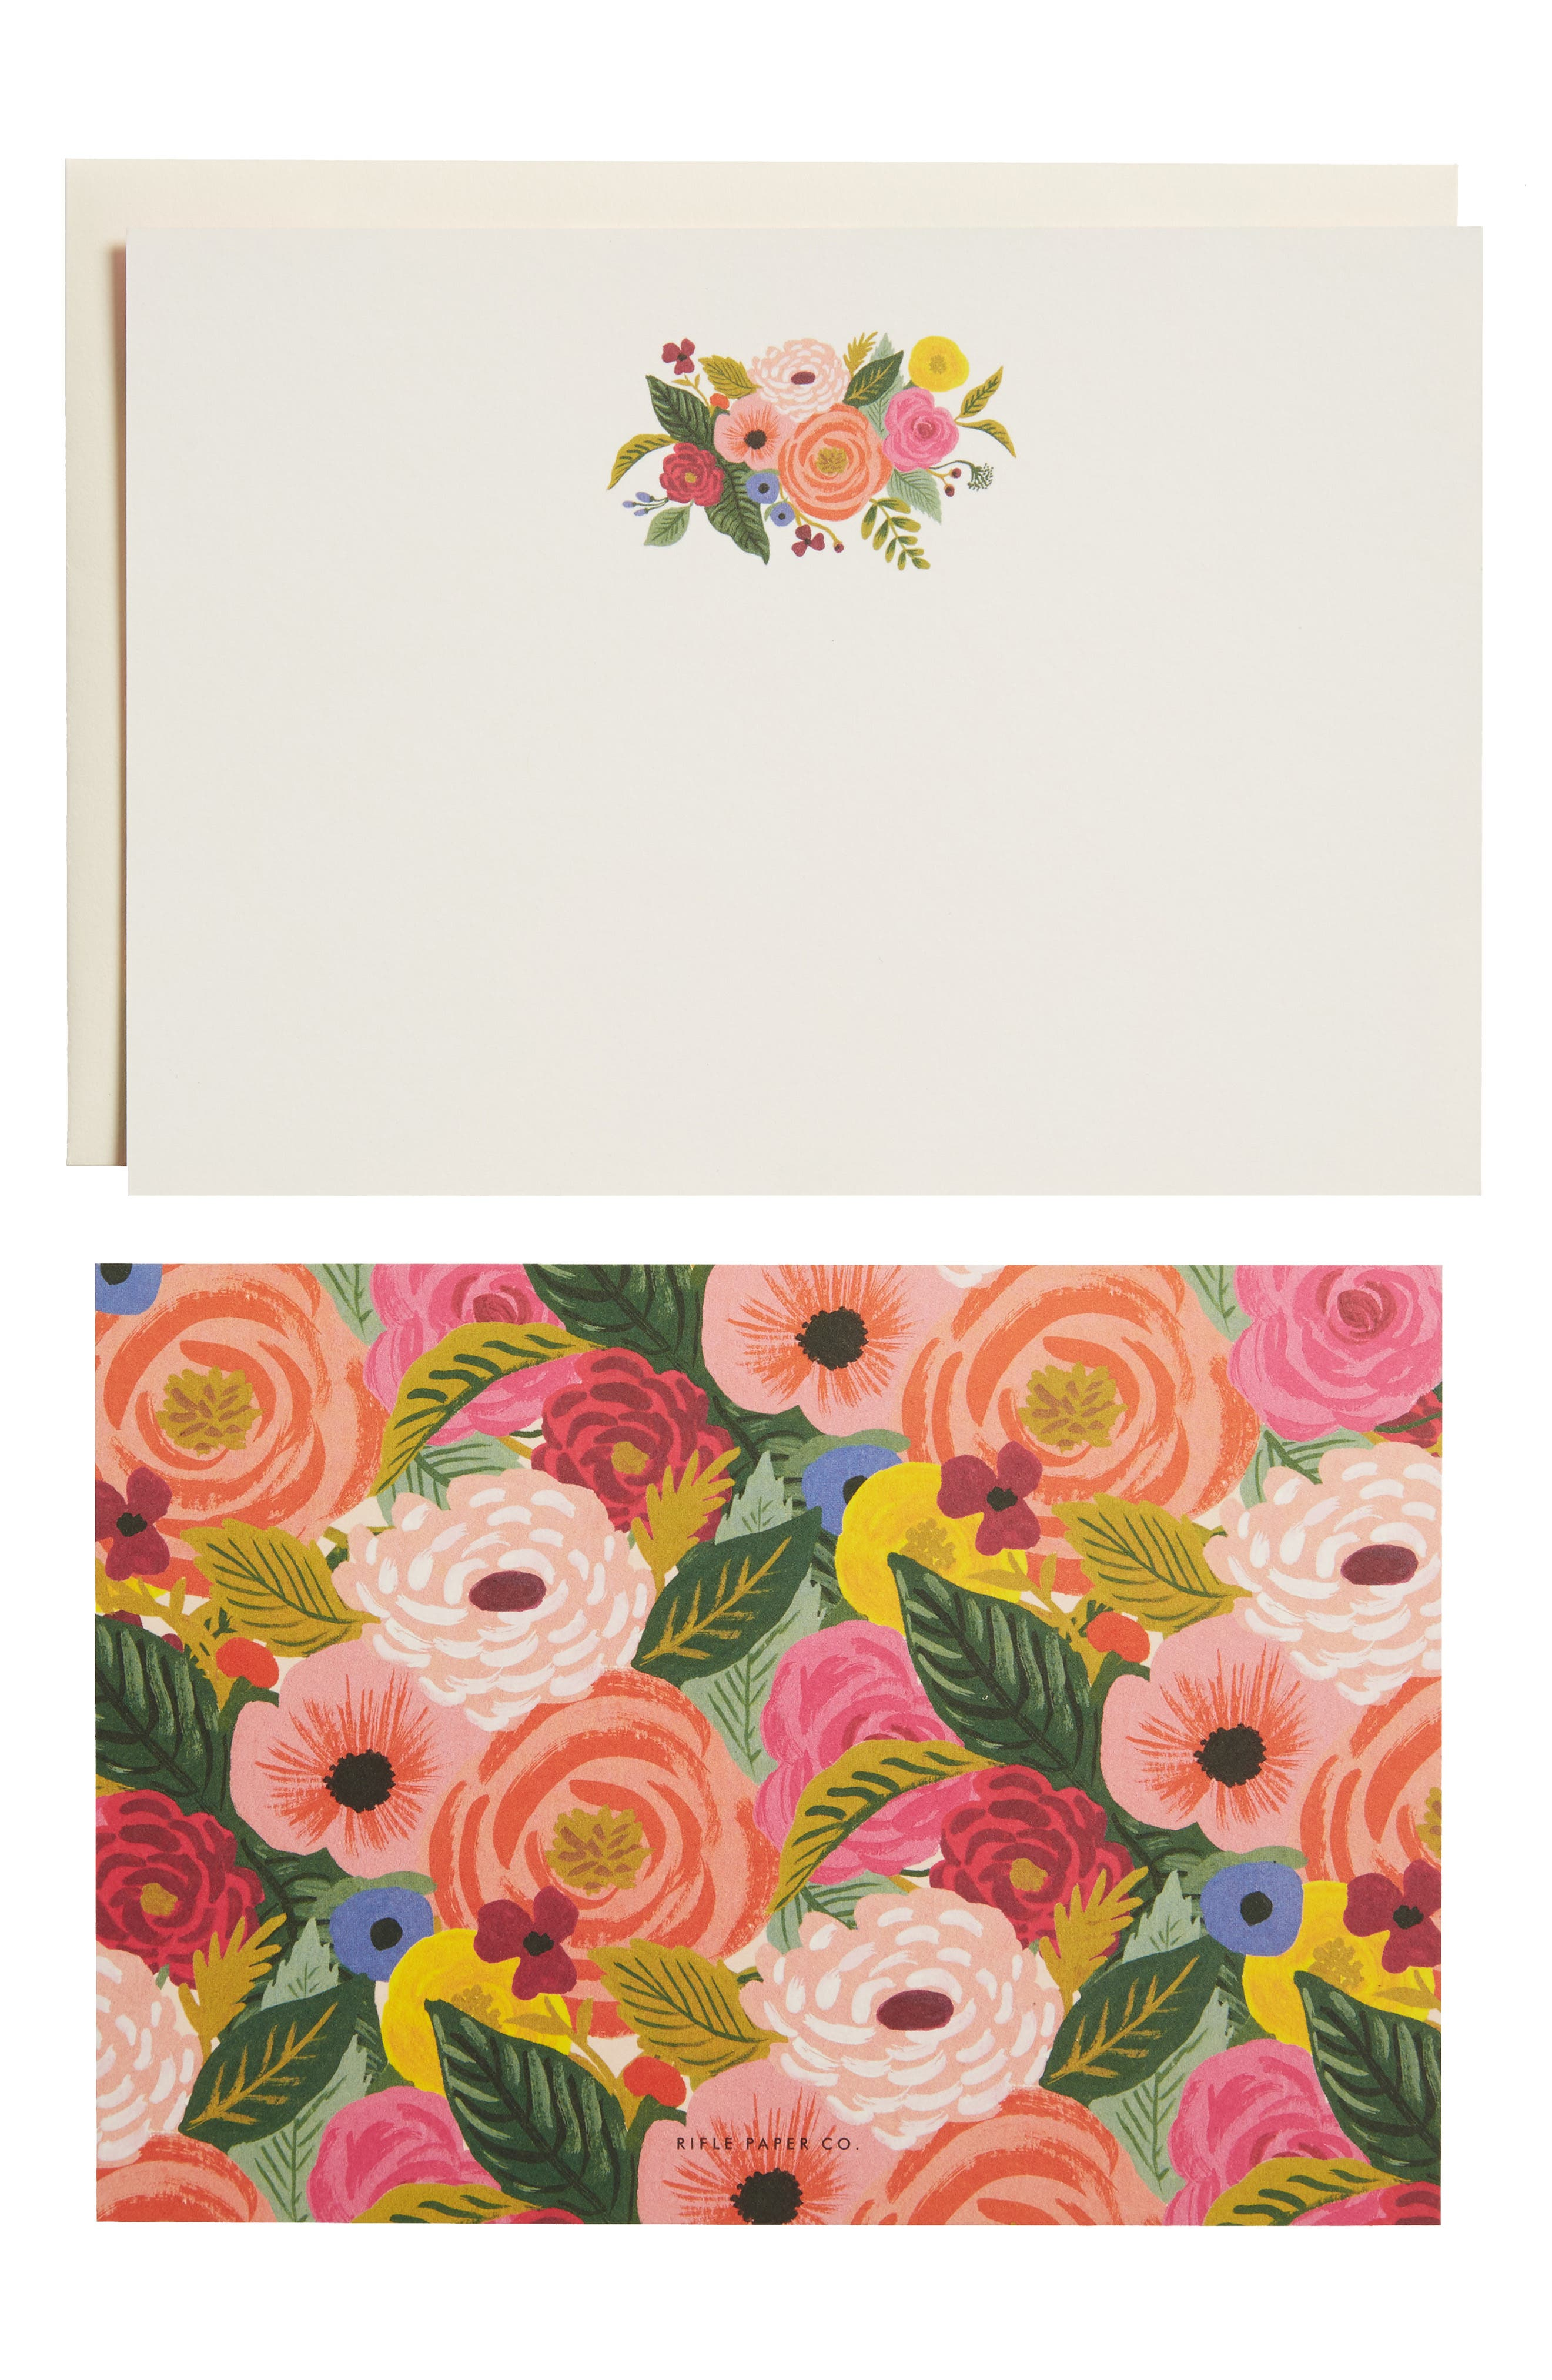 Alternate Image 1 Selected - Rifle Paper Co. Juliet Rose Social Stationery 12-Pack Note Cards & Envelopes